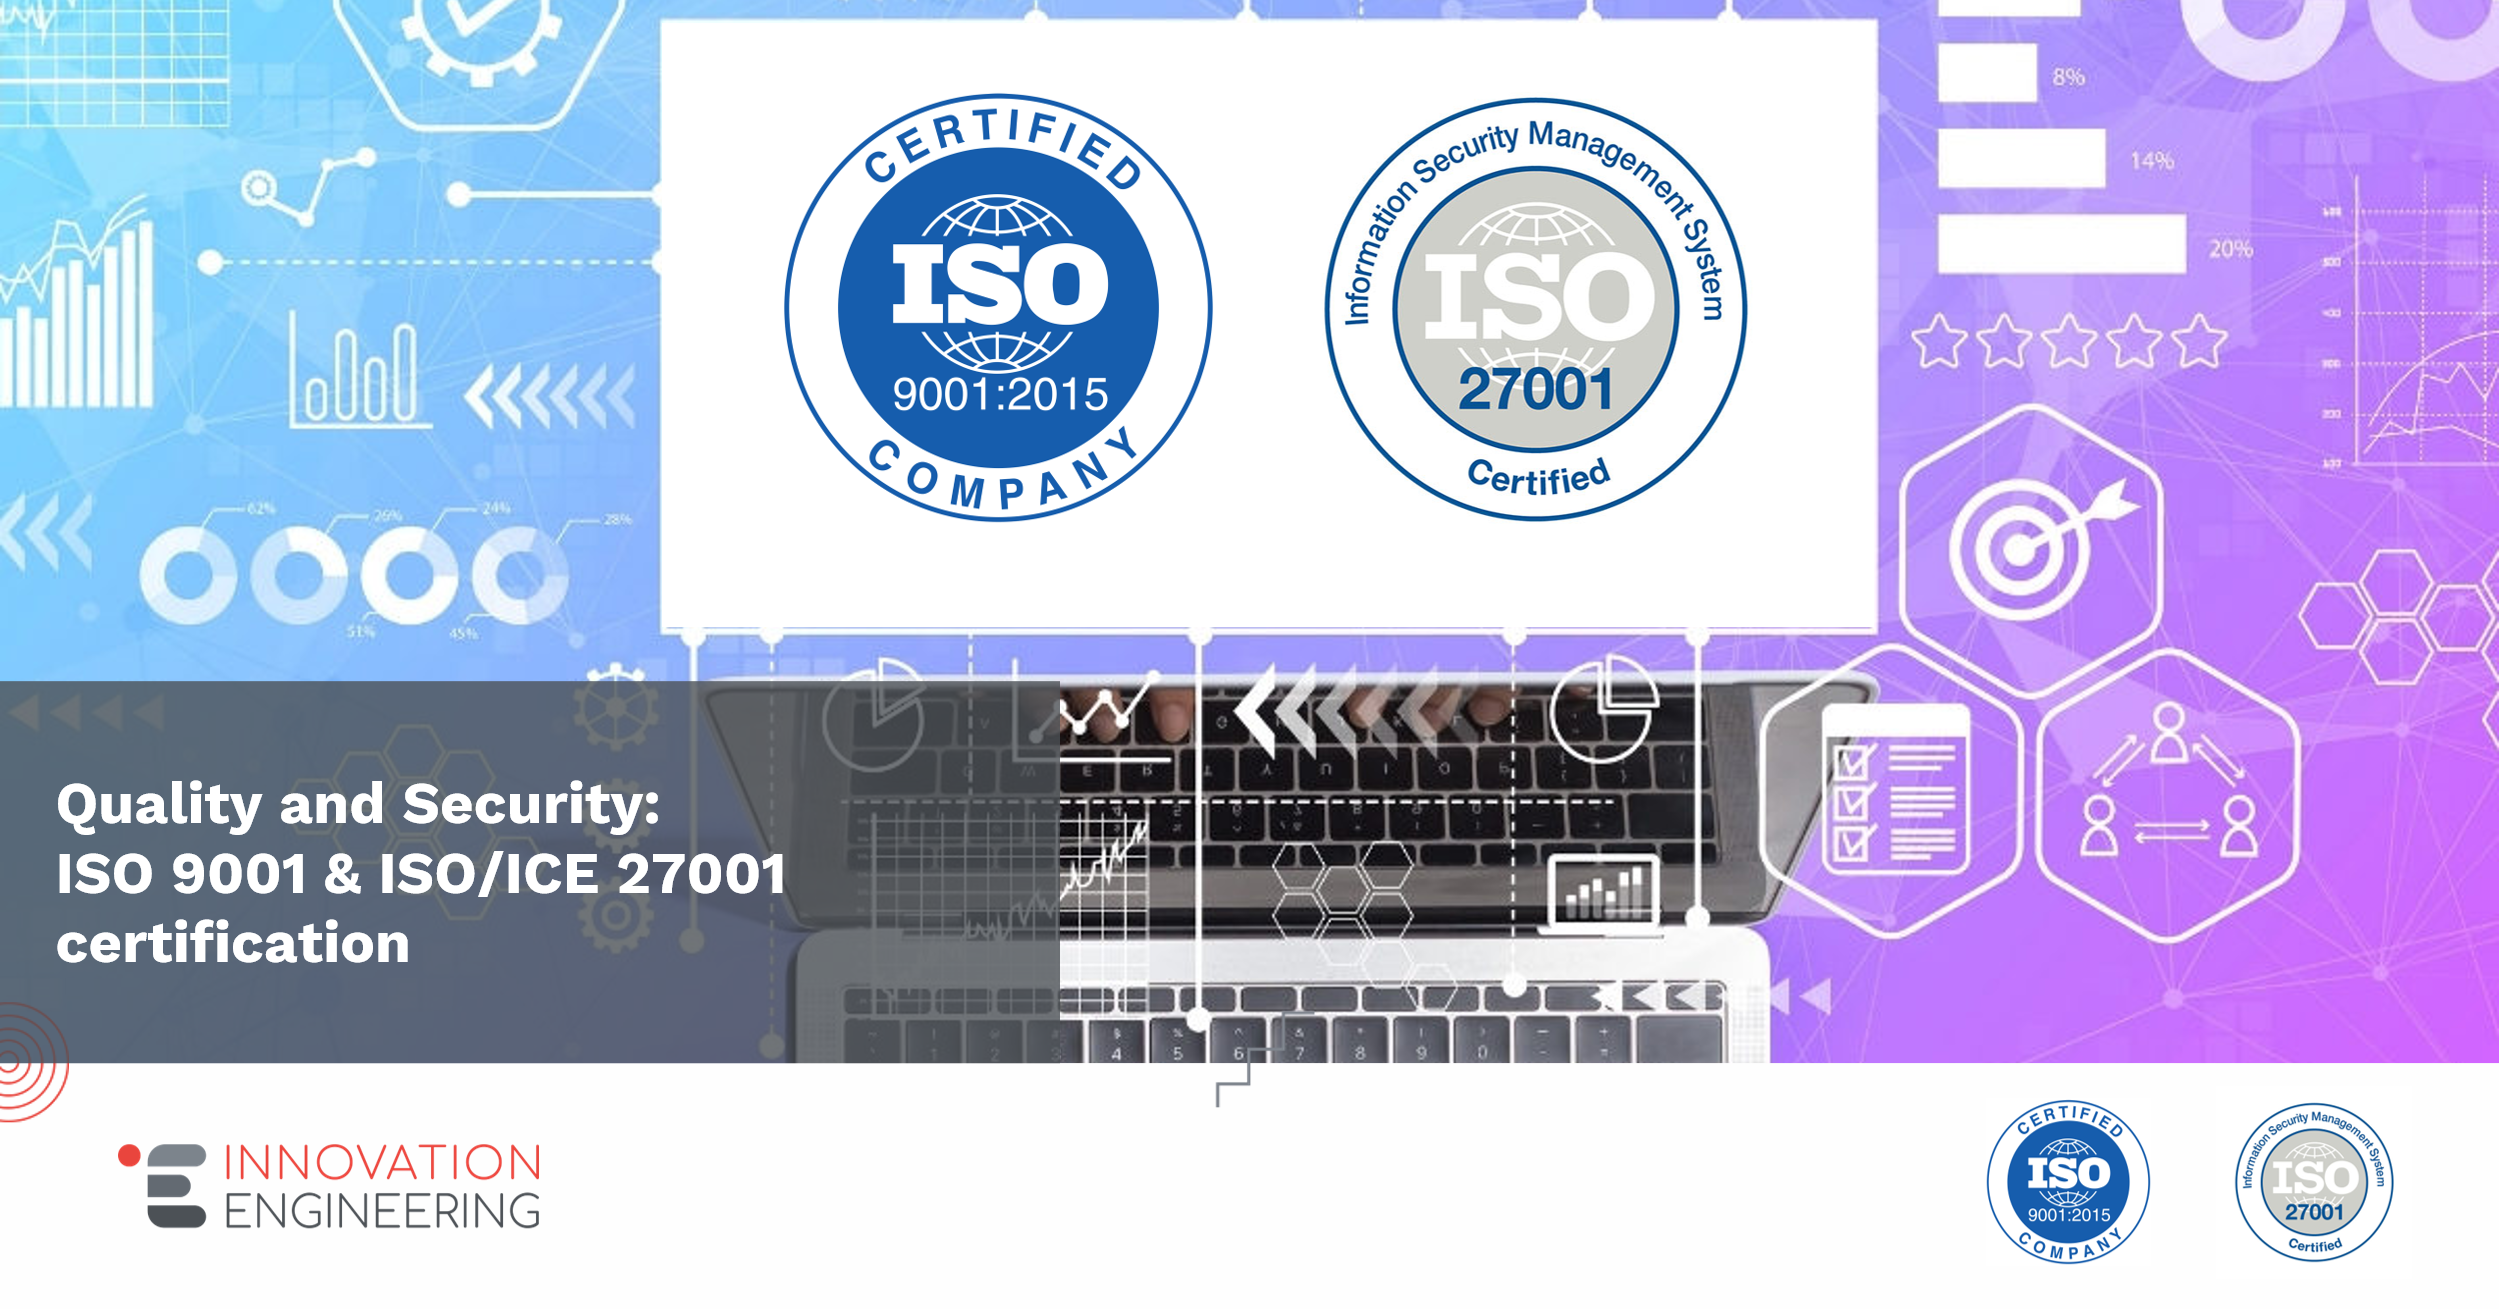 Innovation Engineering: a SME now ISO 9001 & ISO/ICE 27001 certified!